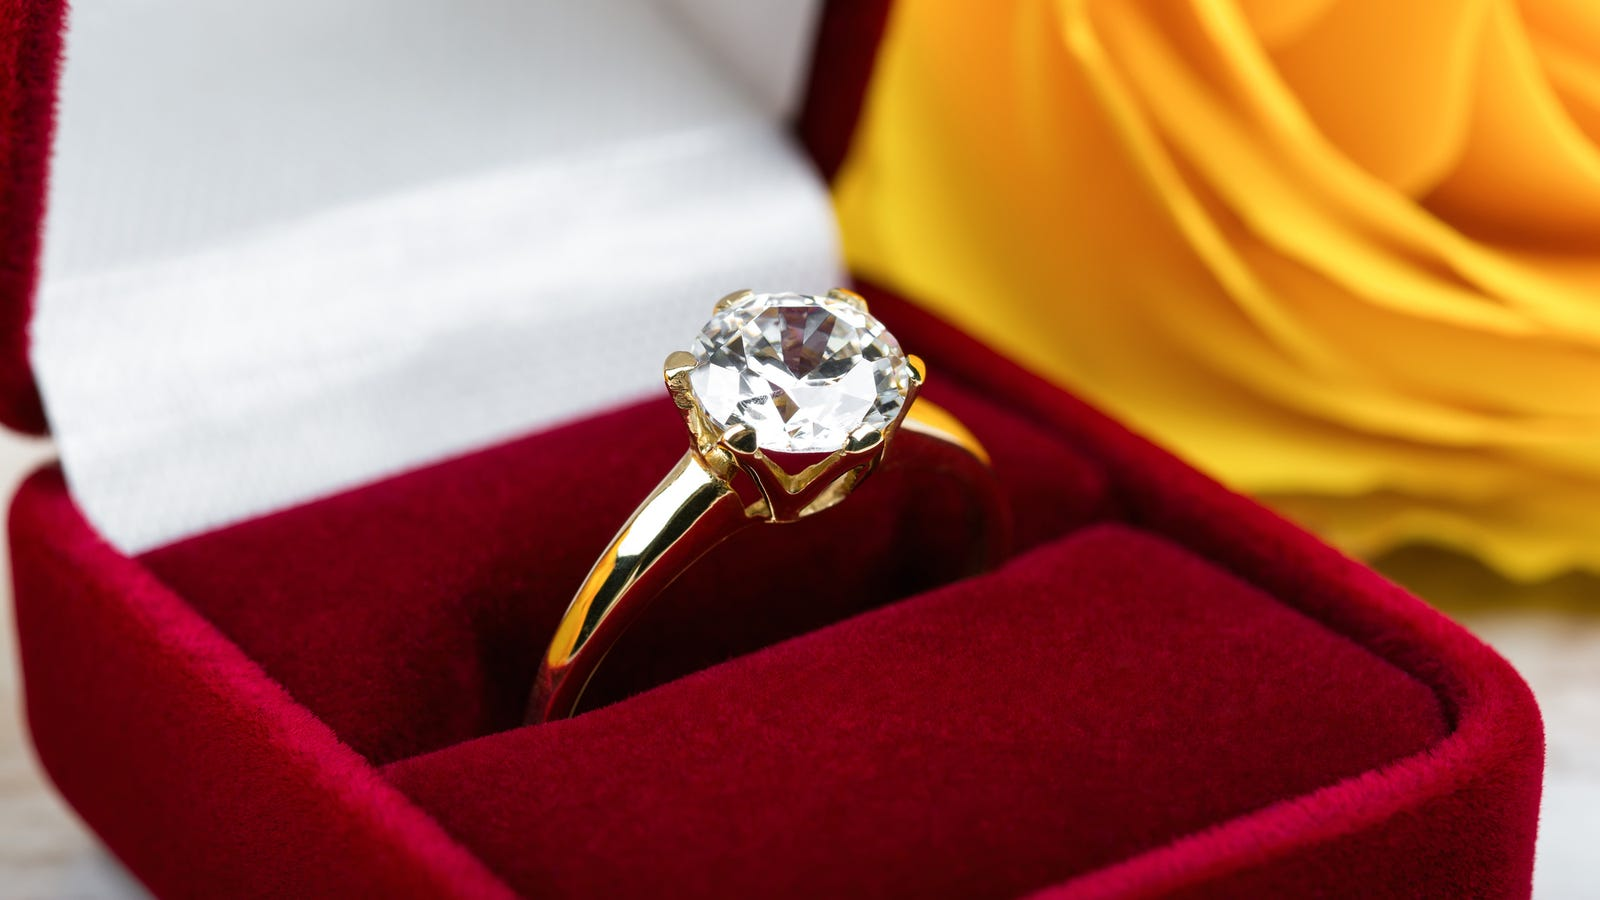 Wedding Experts Say Engagement Ring Should Cost At Least Three Diamond Miners' Lives